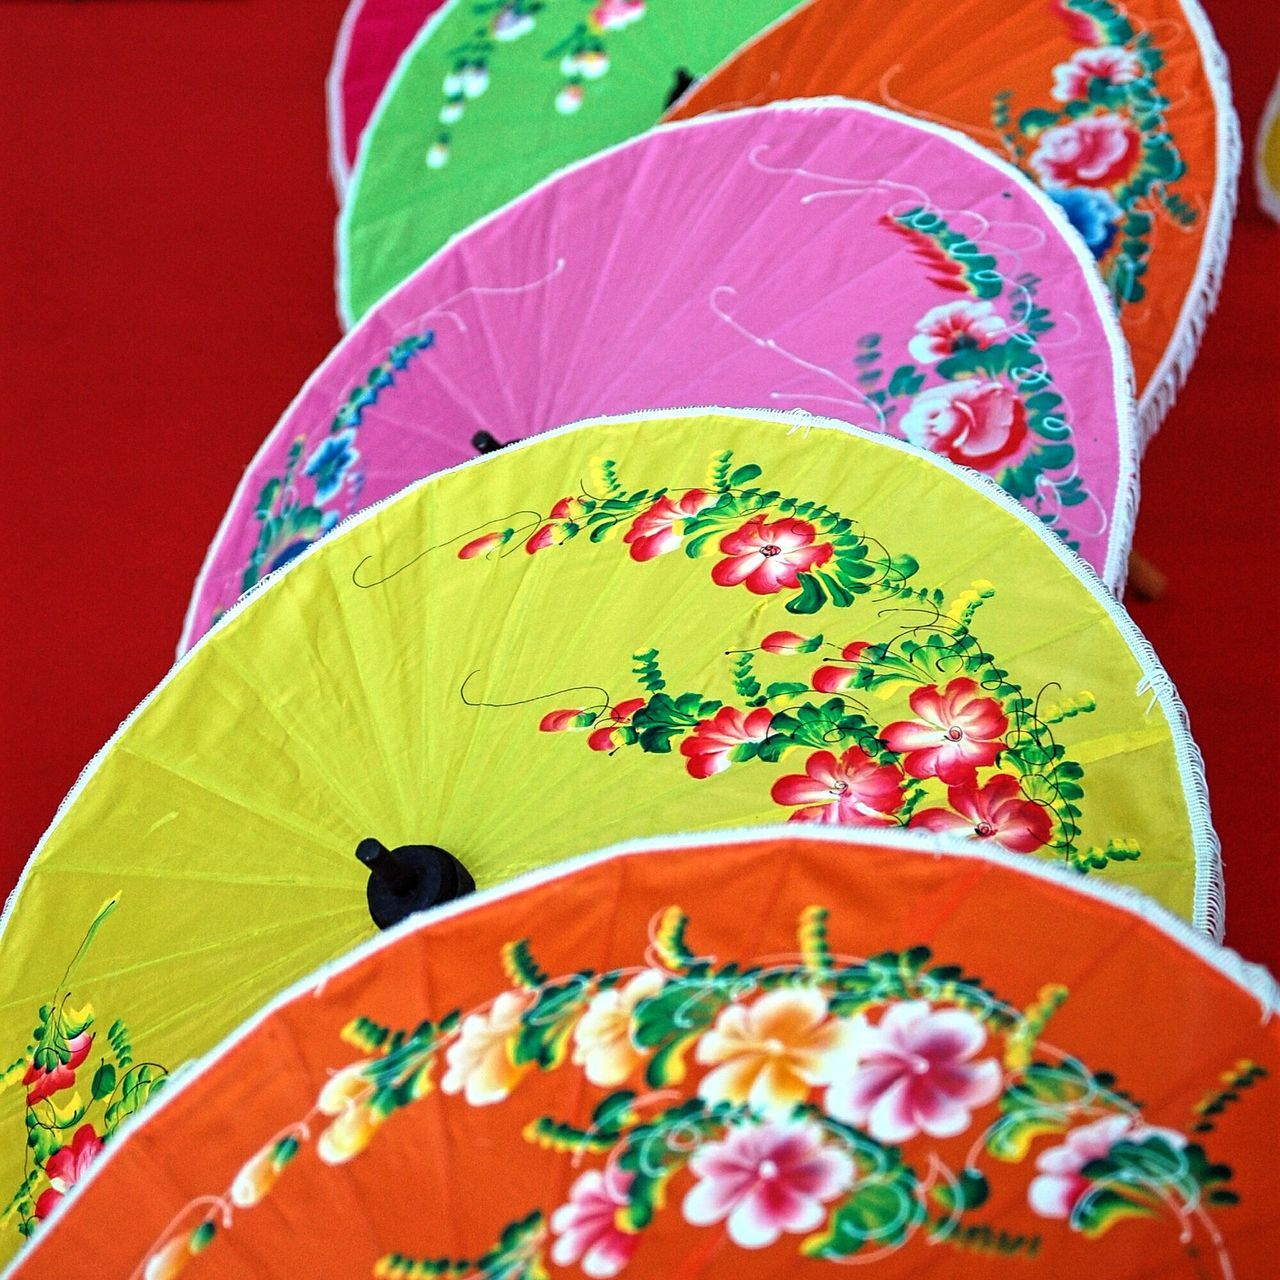 Multi Colored China Umbrellas Cultures China Culture Oriental Festival Indoors  Close-up Close Up Colorful Decorated Traditional Culture